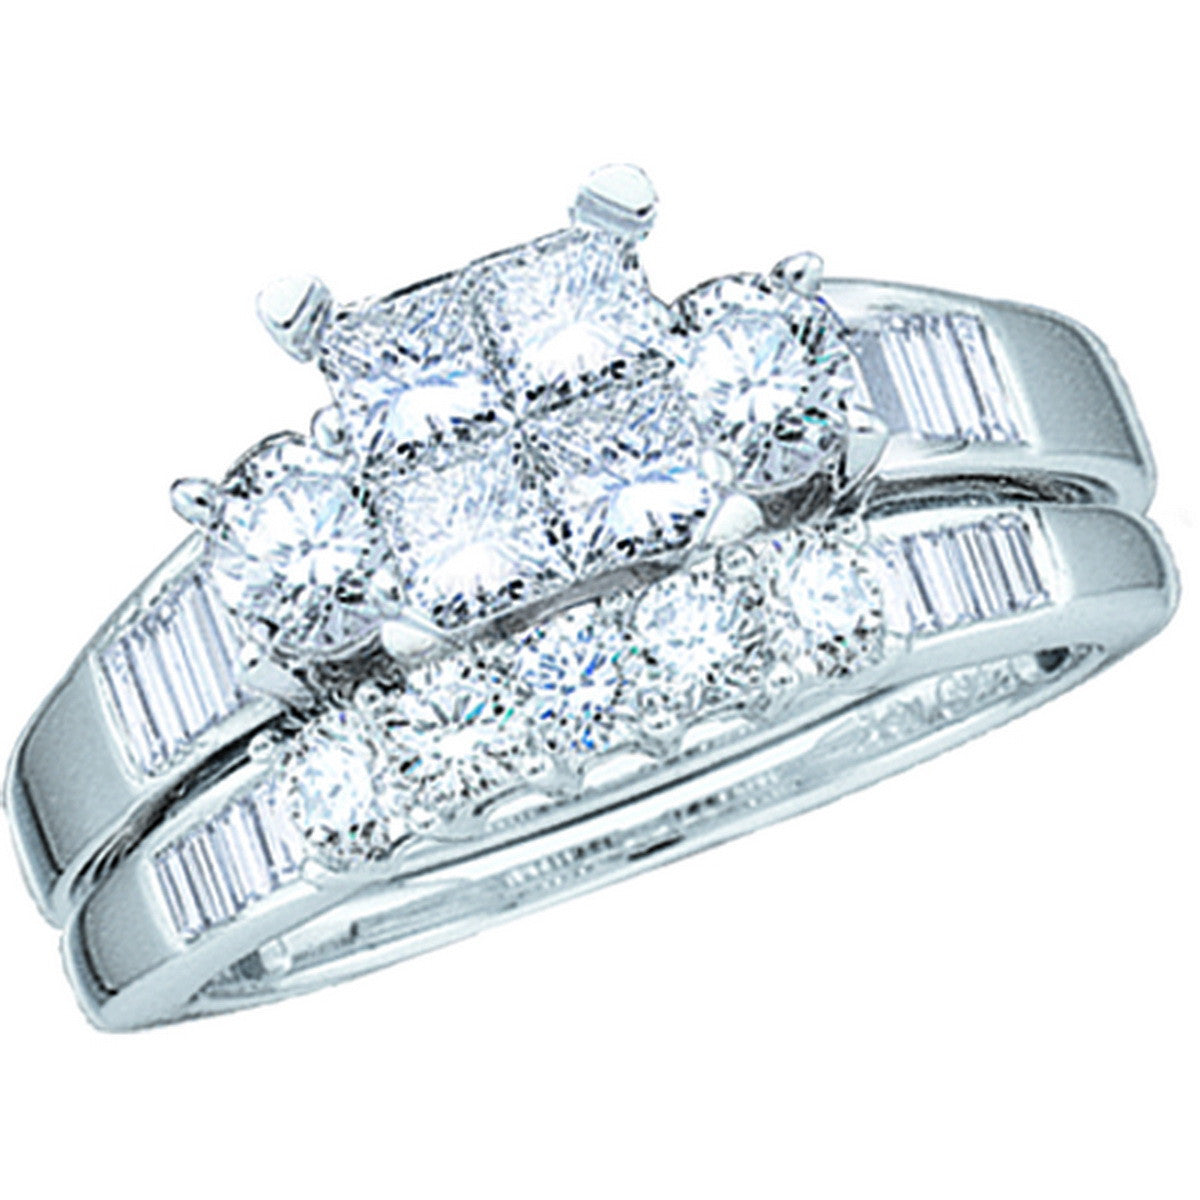 14kt White Gold Womens Princess Diamond Bridal Wedding Engagement Ring Band Set 1.00 Cttw 38021 - shirin-diamonds